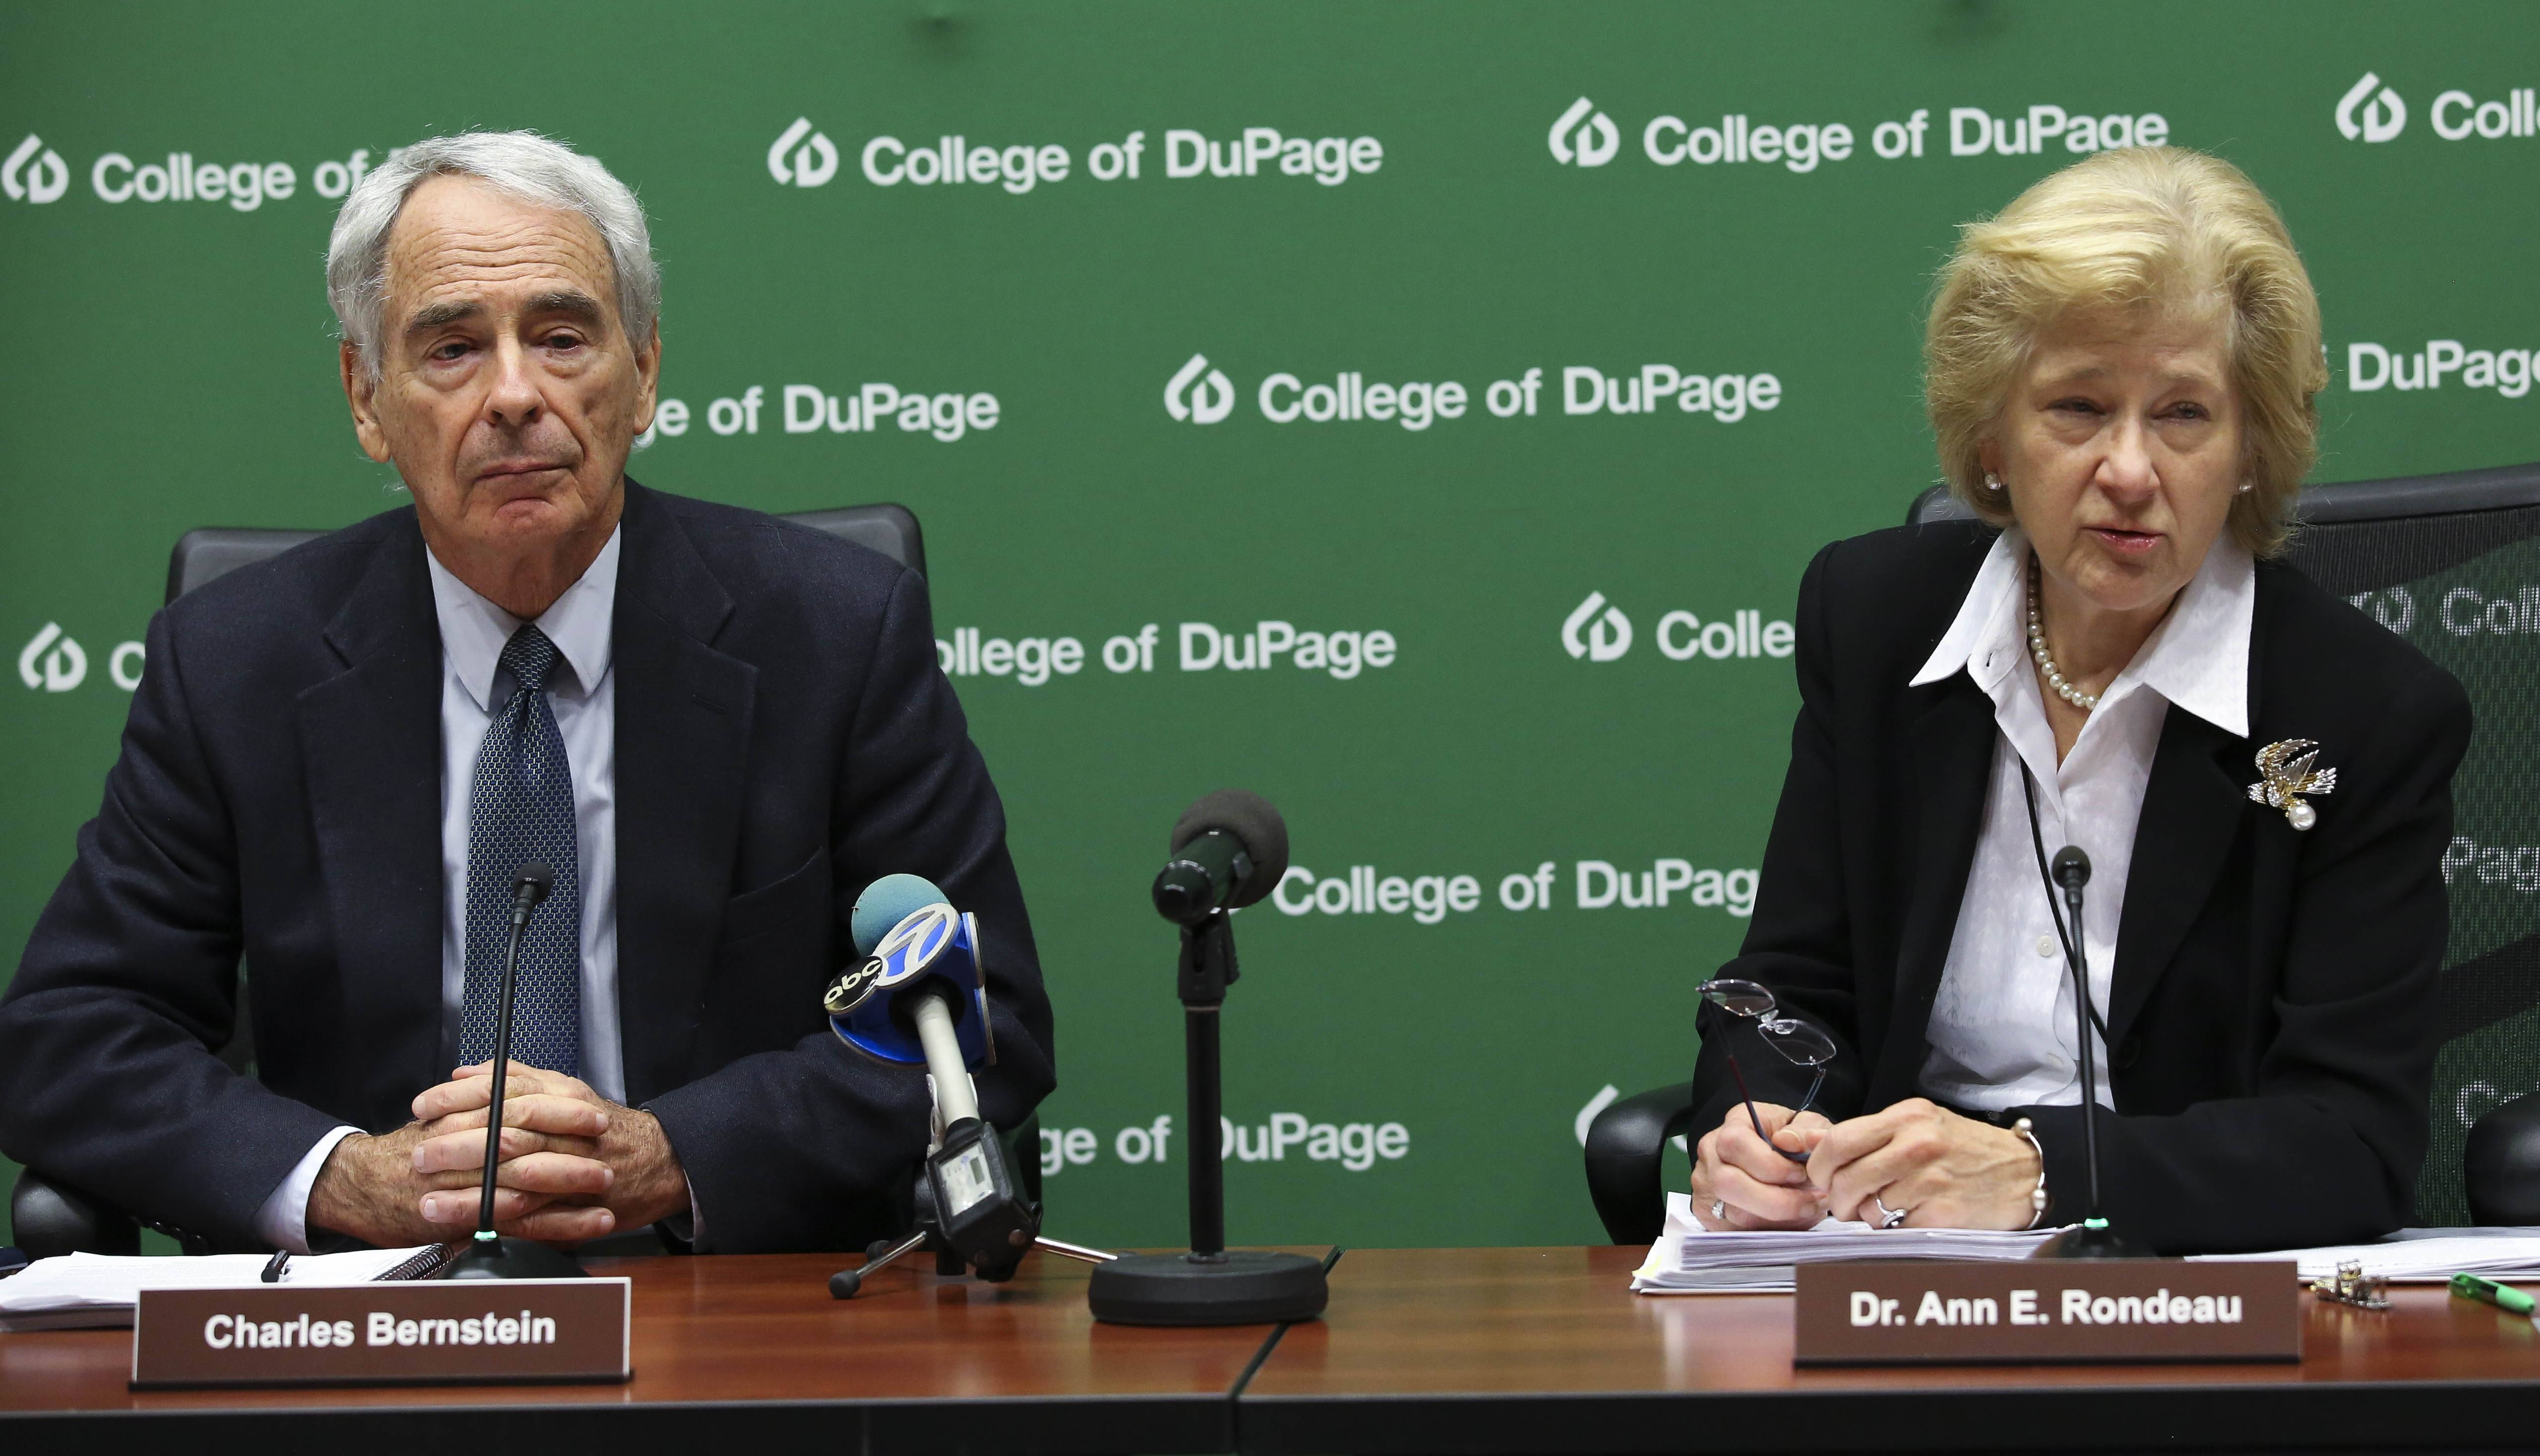 Auditor: College of DuPage needs to improve oversight, operations